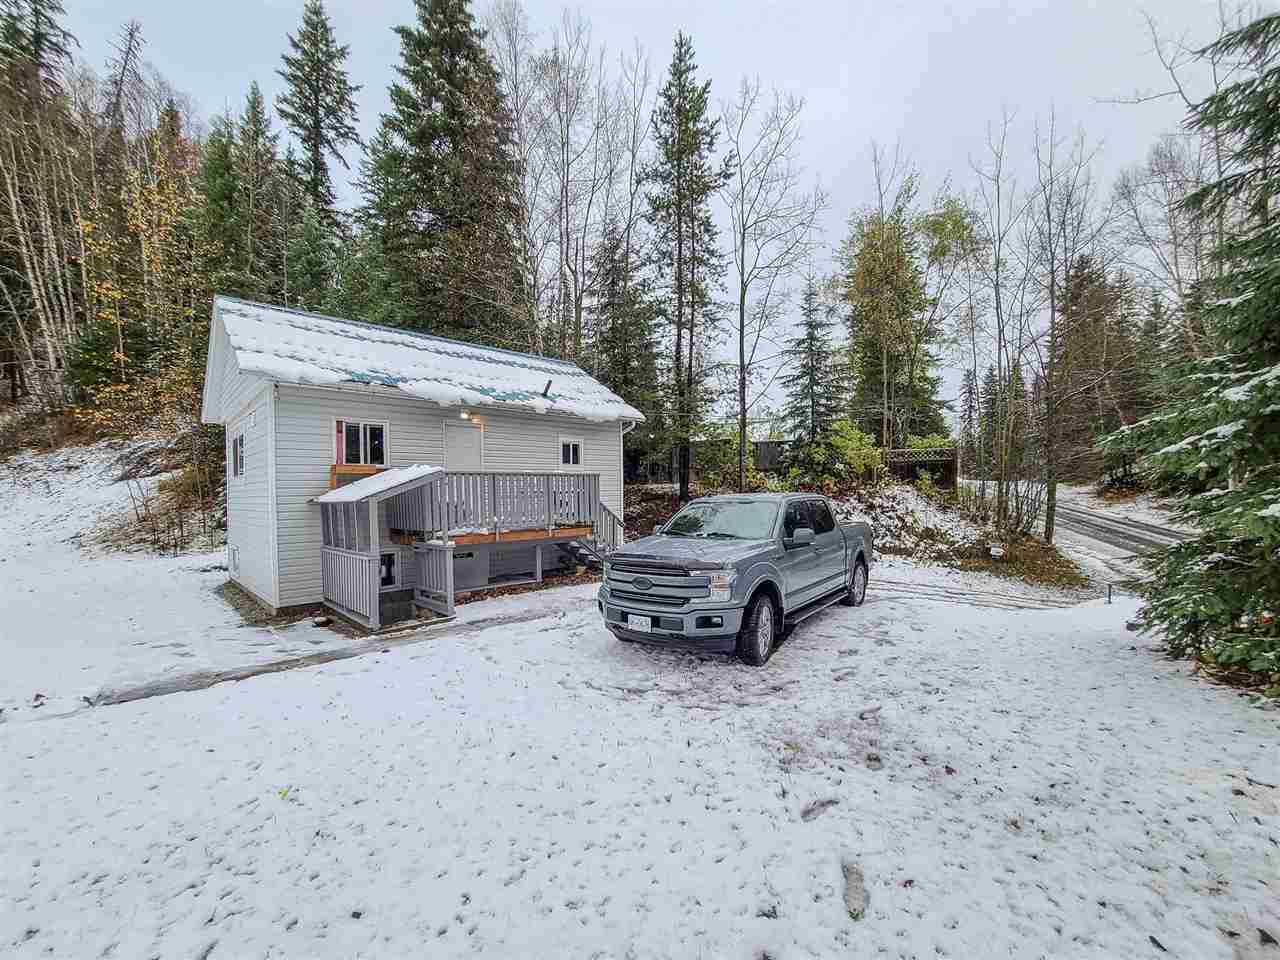 """Main Photo: 4169 E KENWORTH Road in Prince George: Mount Alder House for sale in """"HART HIGHWAY"""" (PG City North (Zone 73))  : MLS®# R2509593"""